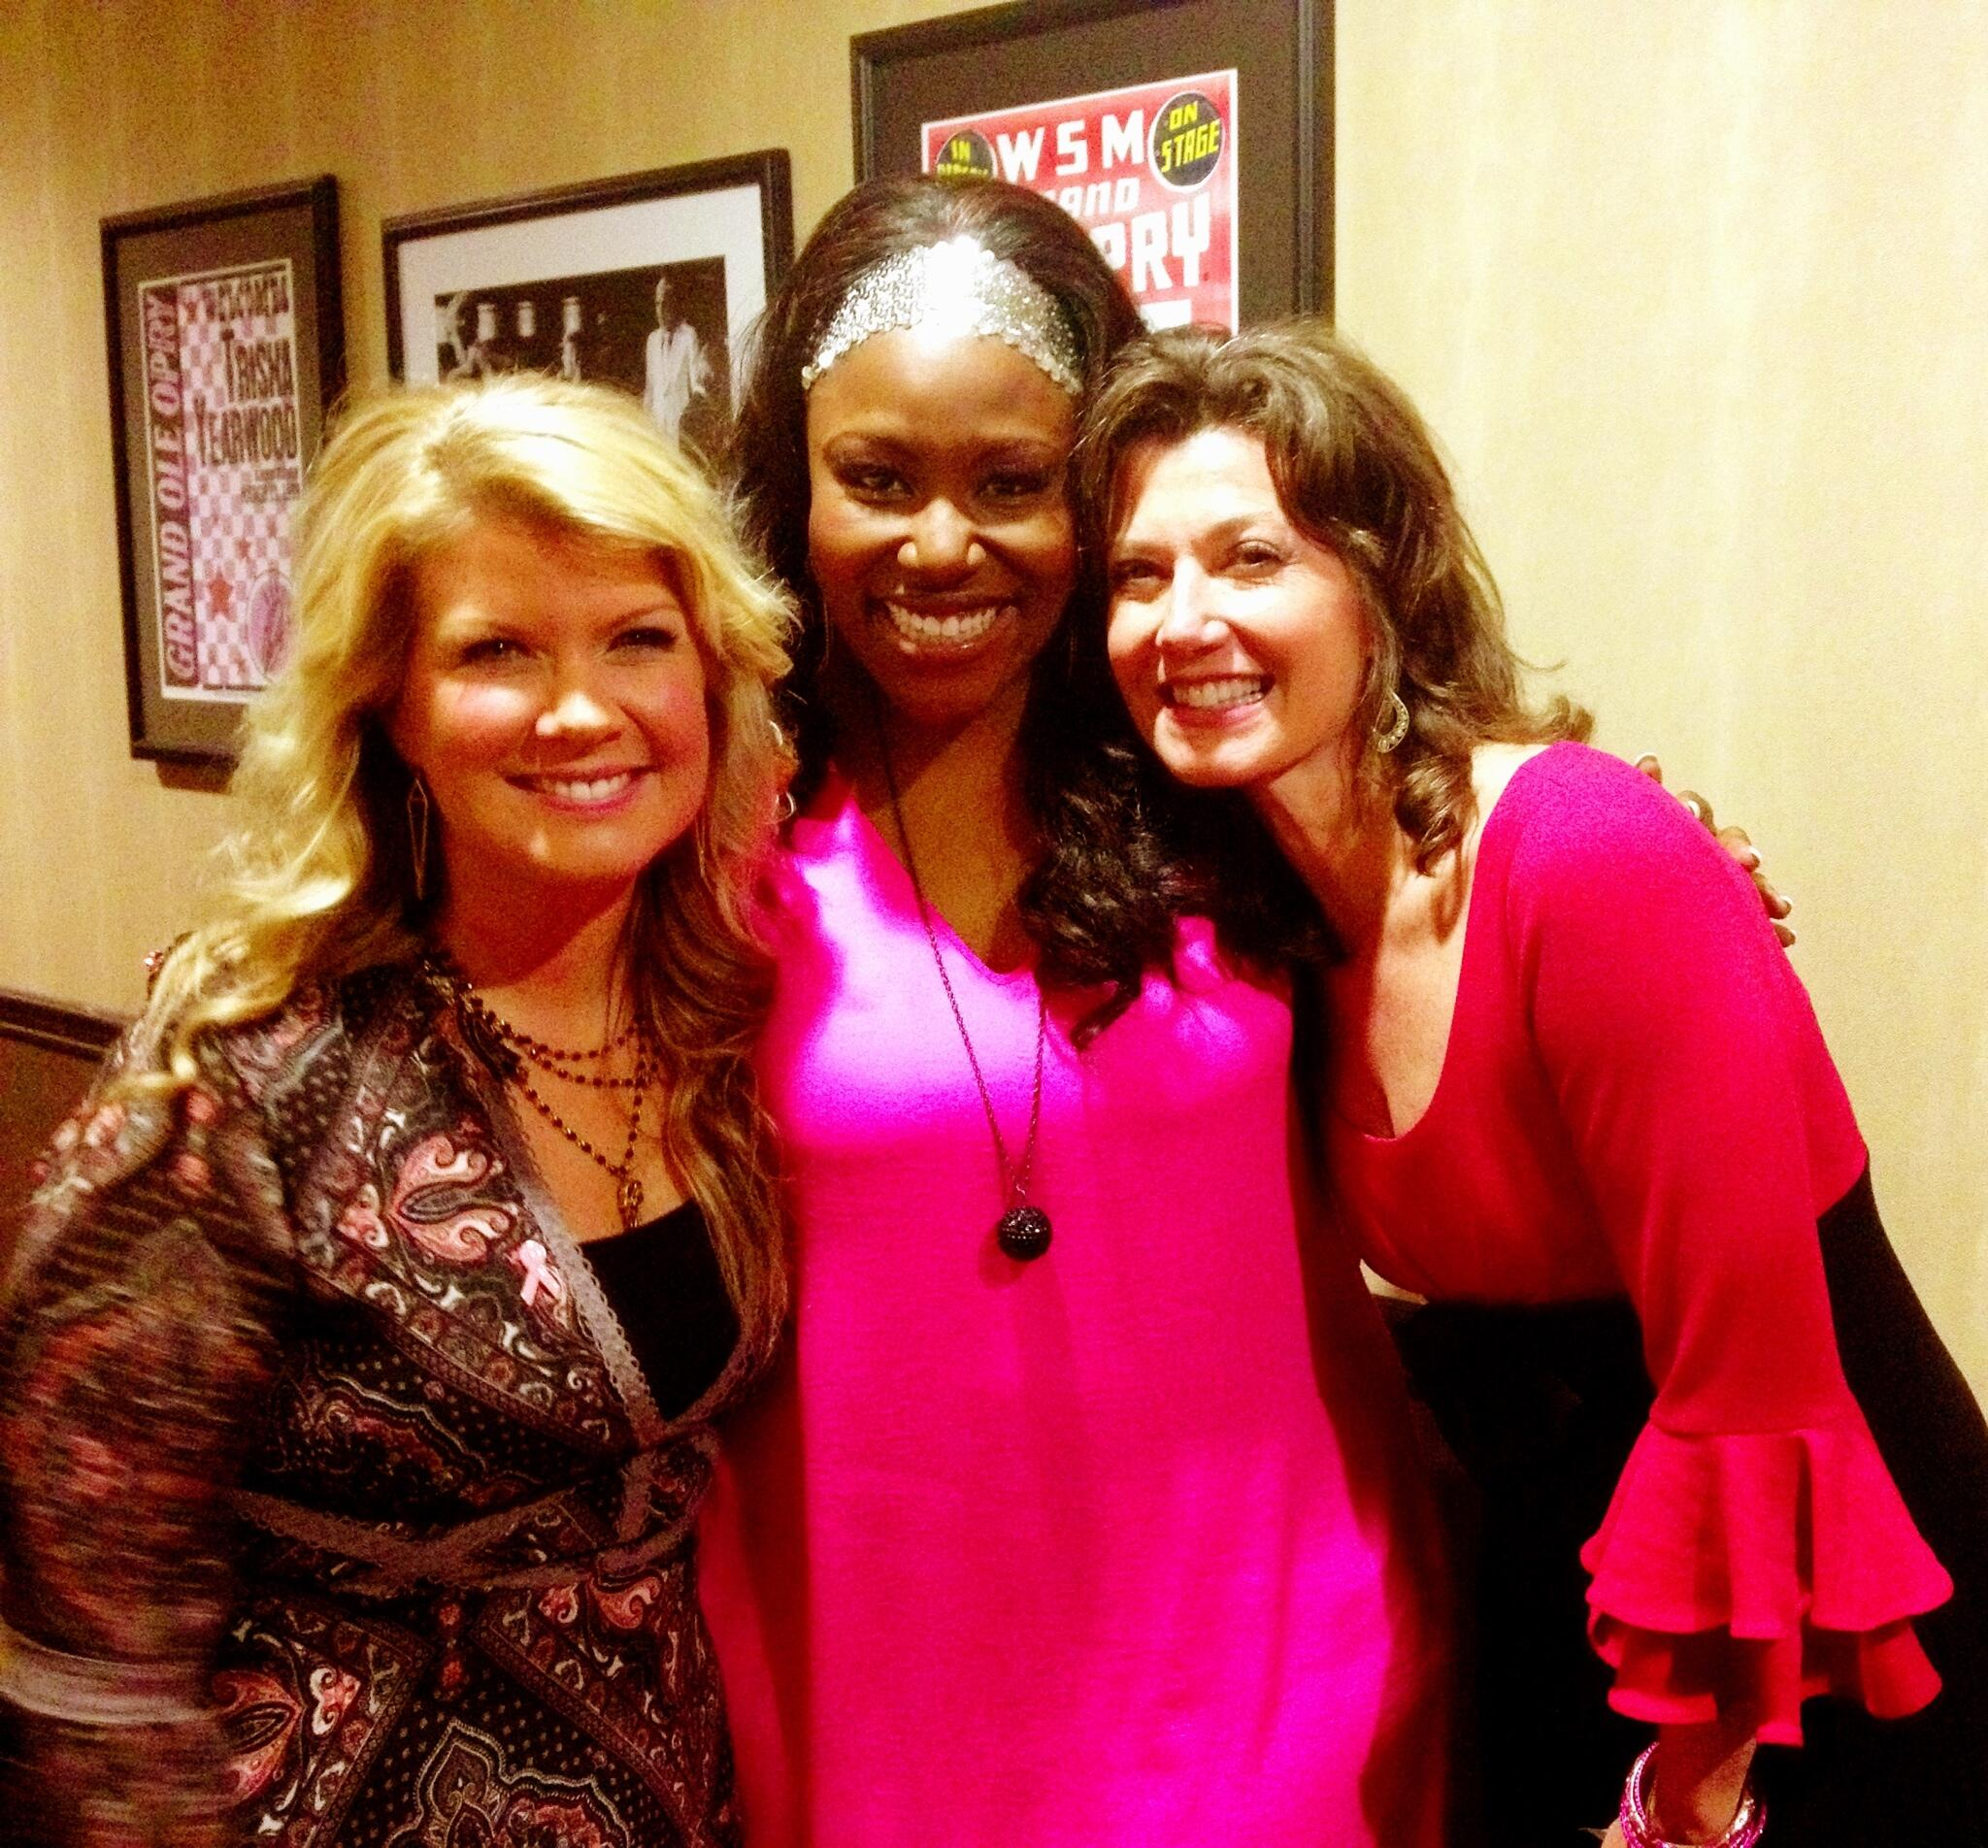 Look! I'm in a #GrantSandwich! LOL! Loved being w/ my #CCMsistas @NatalieGrant & @AmyGrant for #OpryGoesPink tonight! http://t.co/ty897wDyxt